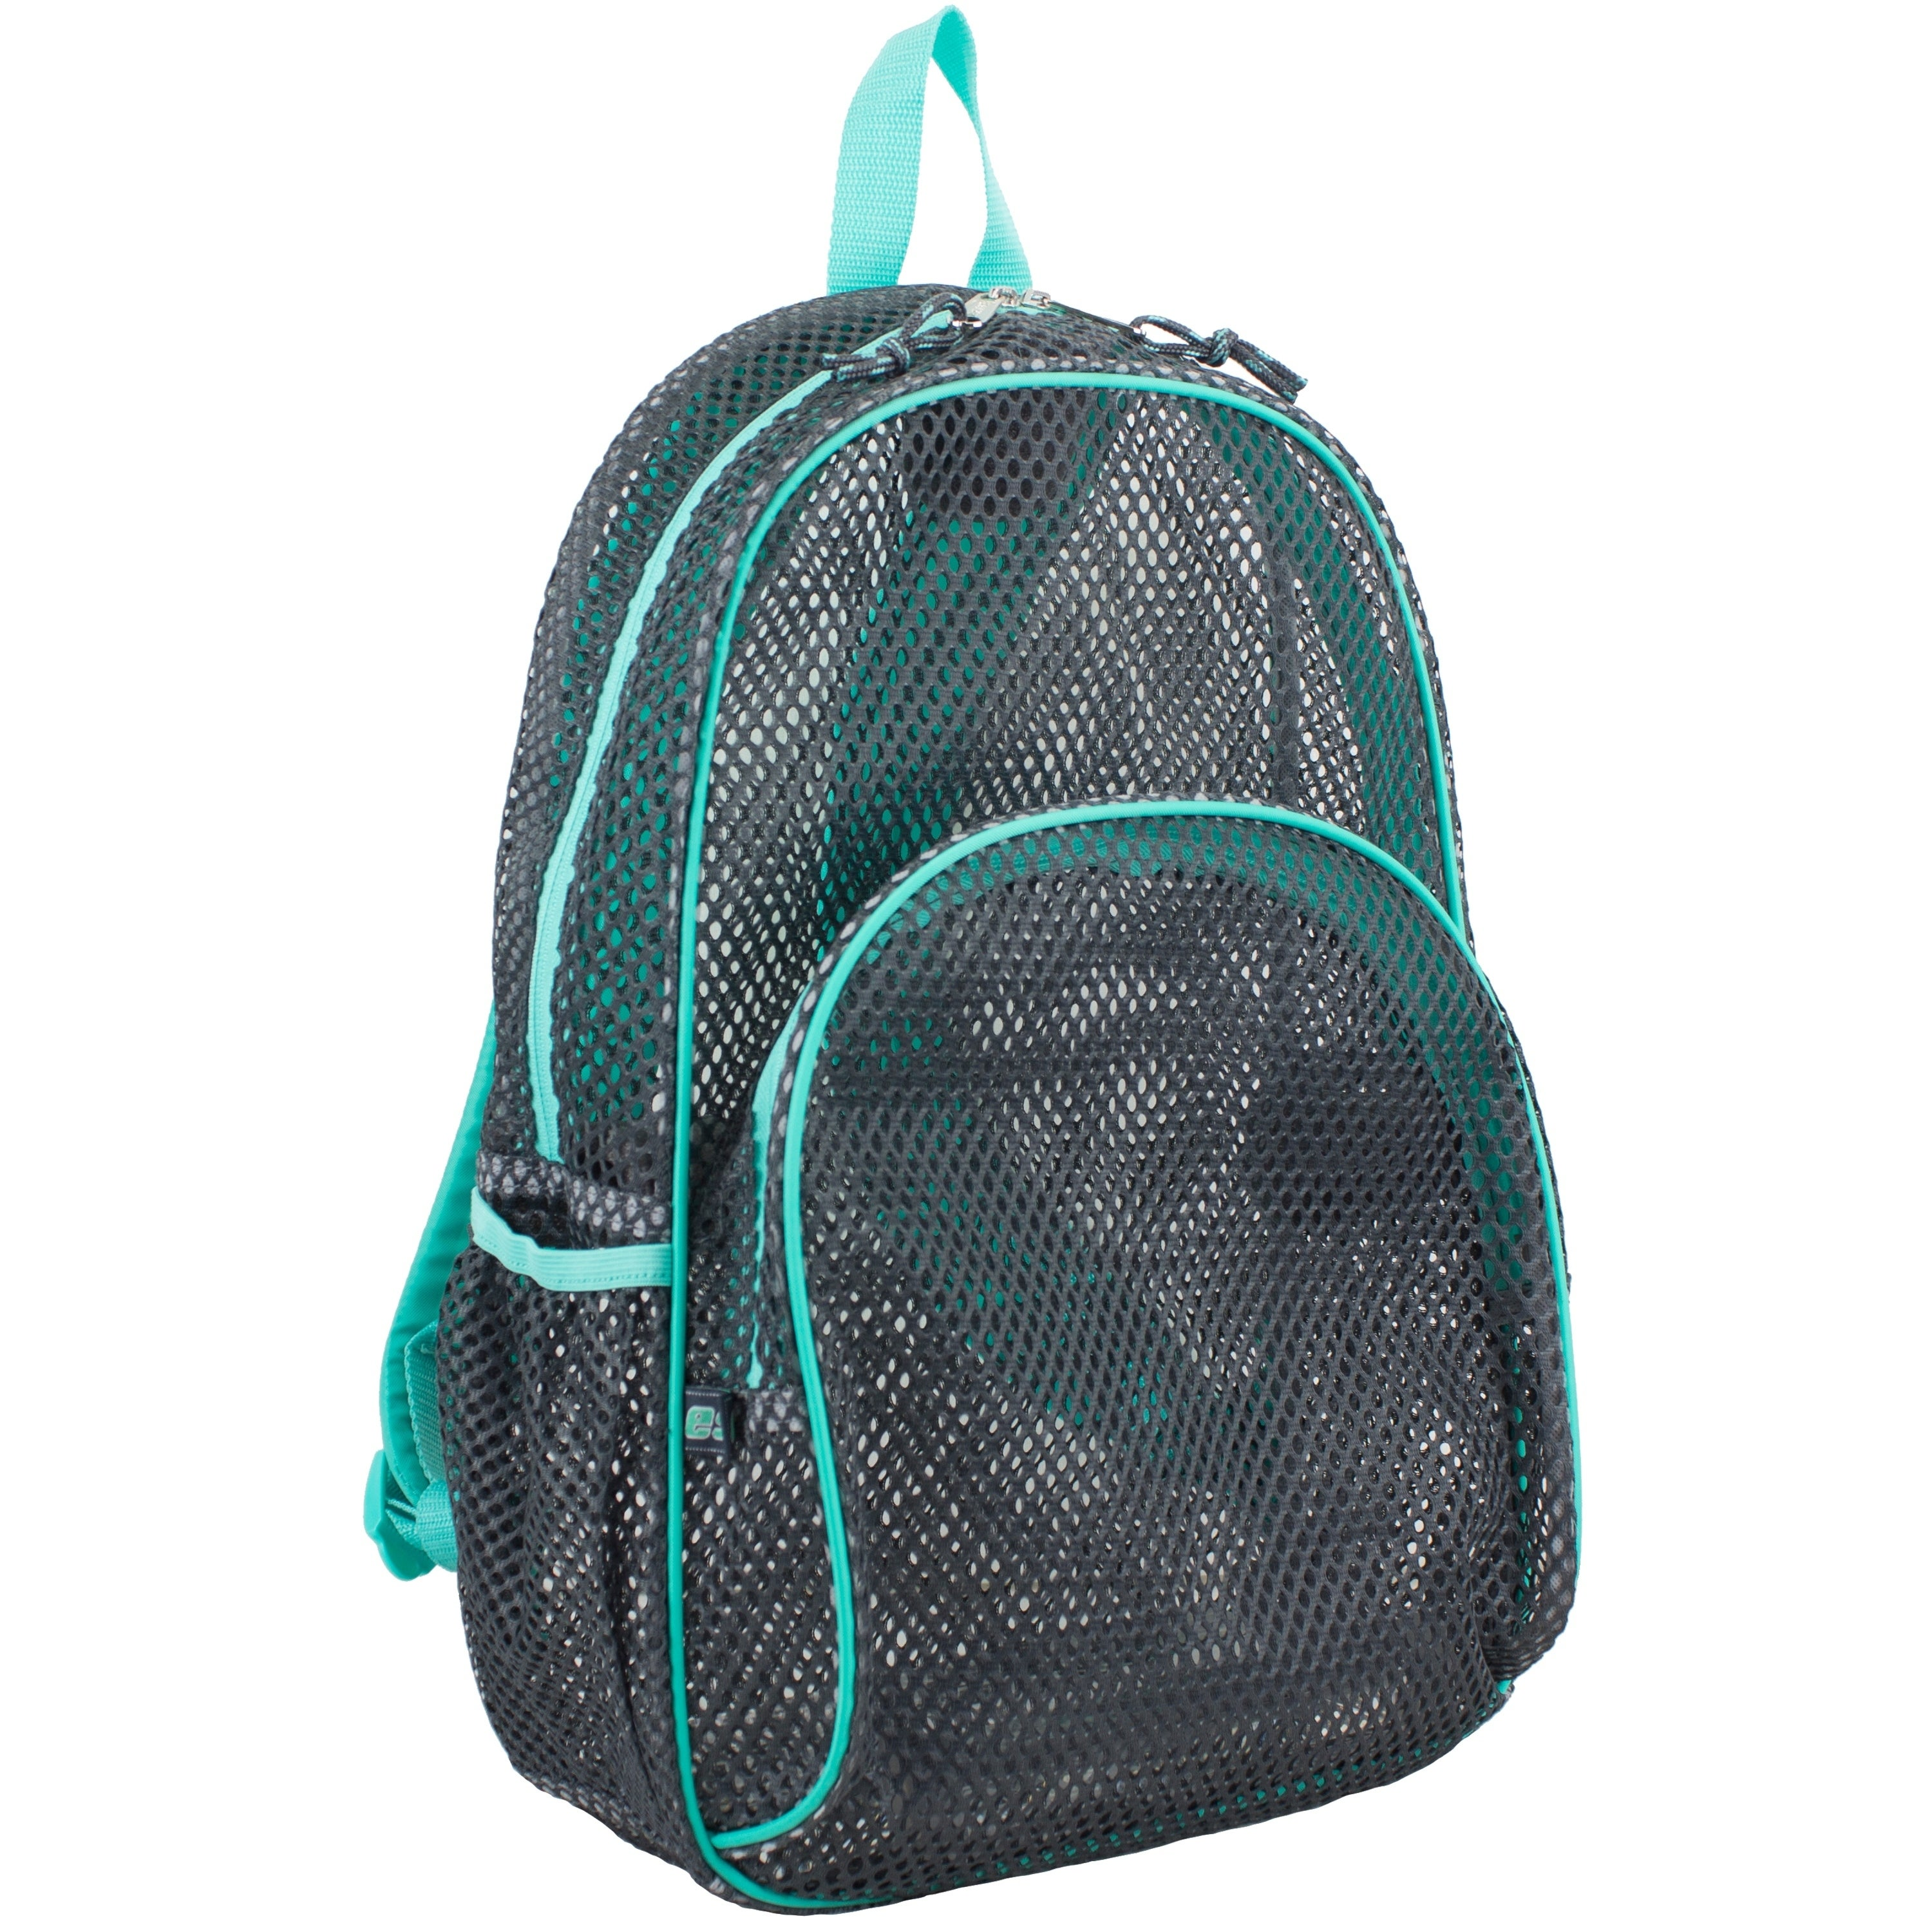 d9a91f5a62 Shop Eastsport Mesh Backpack With Padded Shoulder Straps - Free Shipping On  Orders Over $45 - Overstock - 19384427